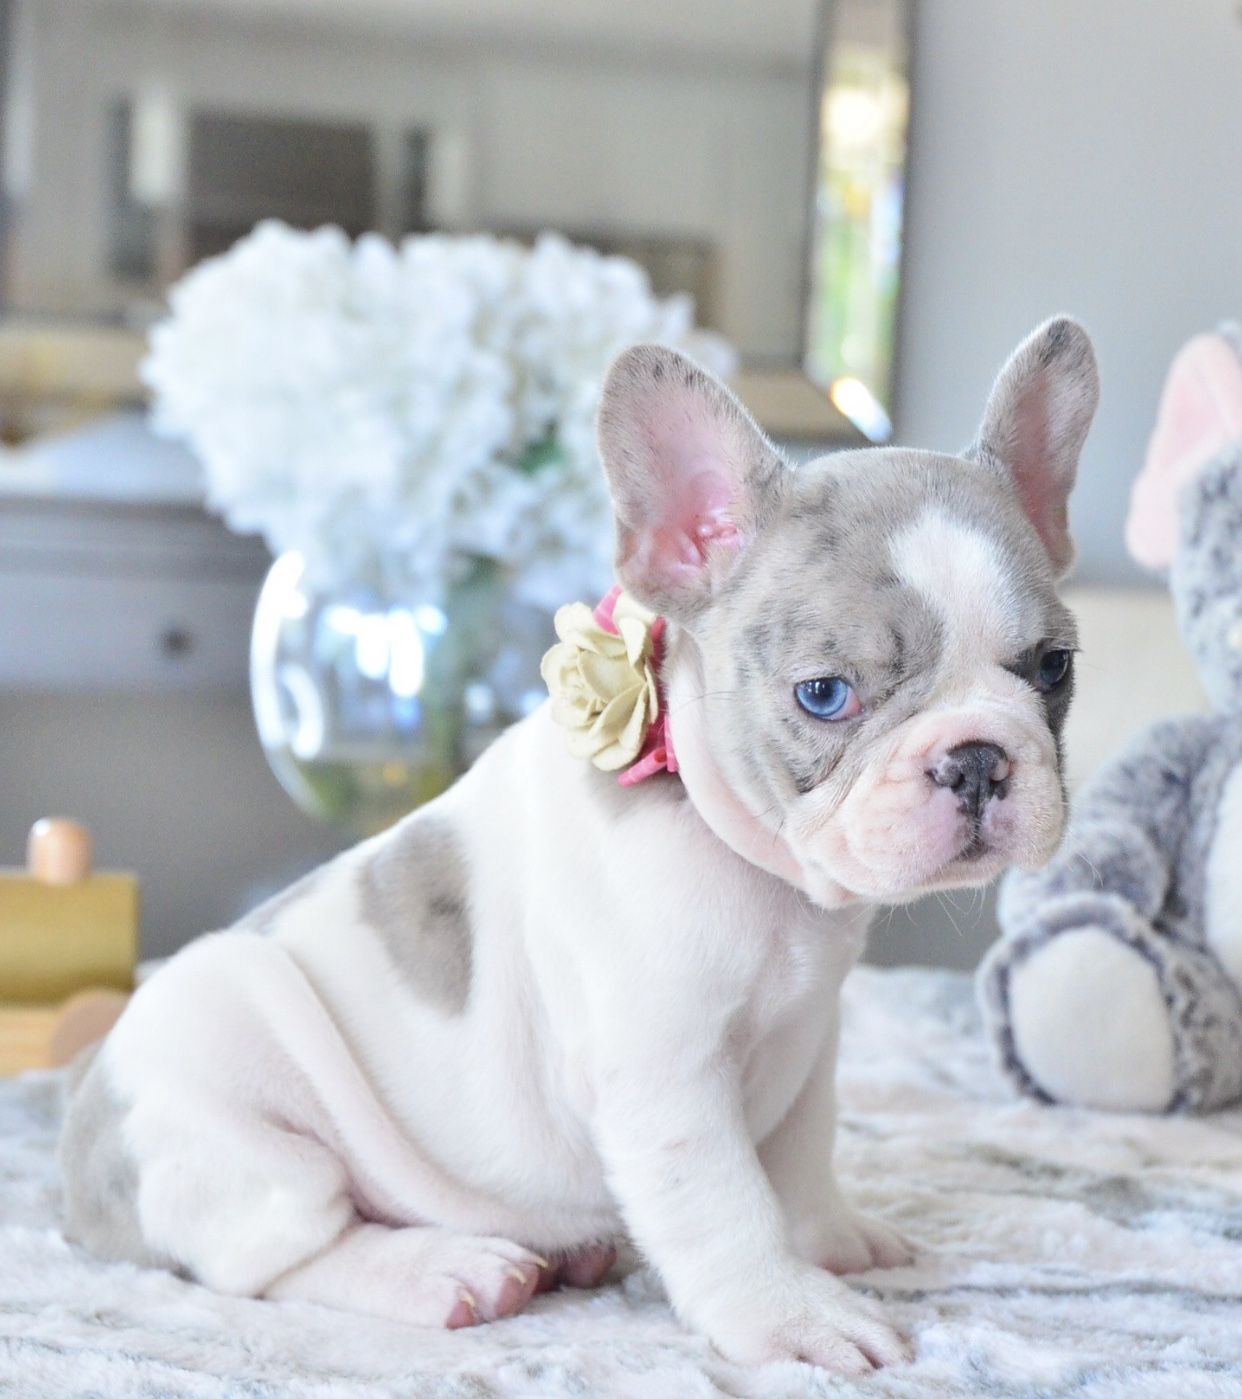 Pin By Naomi Amador On Random In 2020 Bulldog Puppies For Sale French Bulldog Puppies Cute Dogs And Puppies